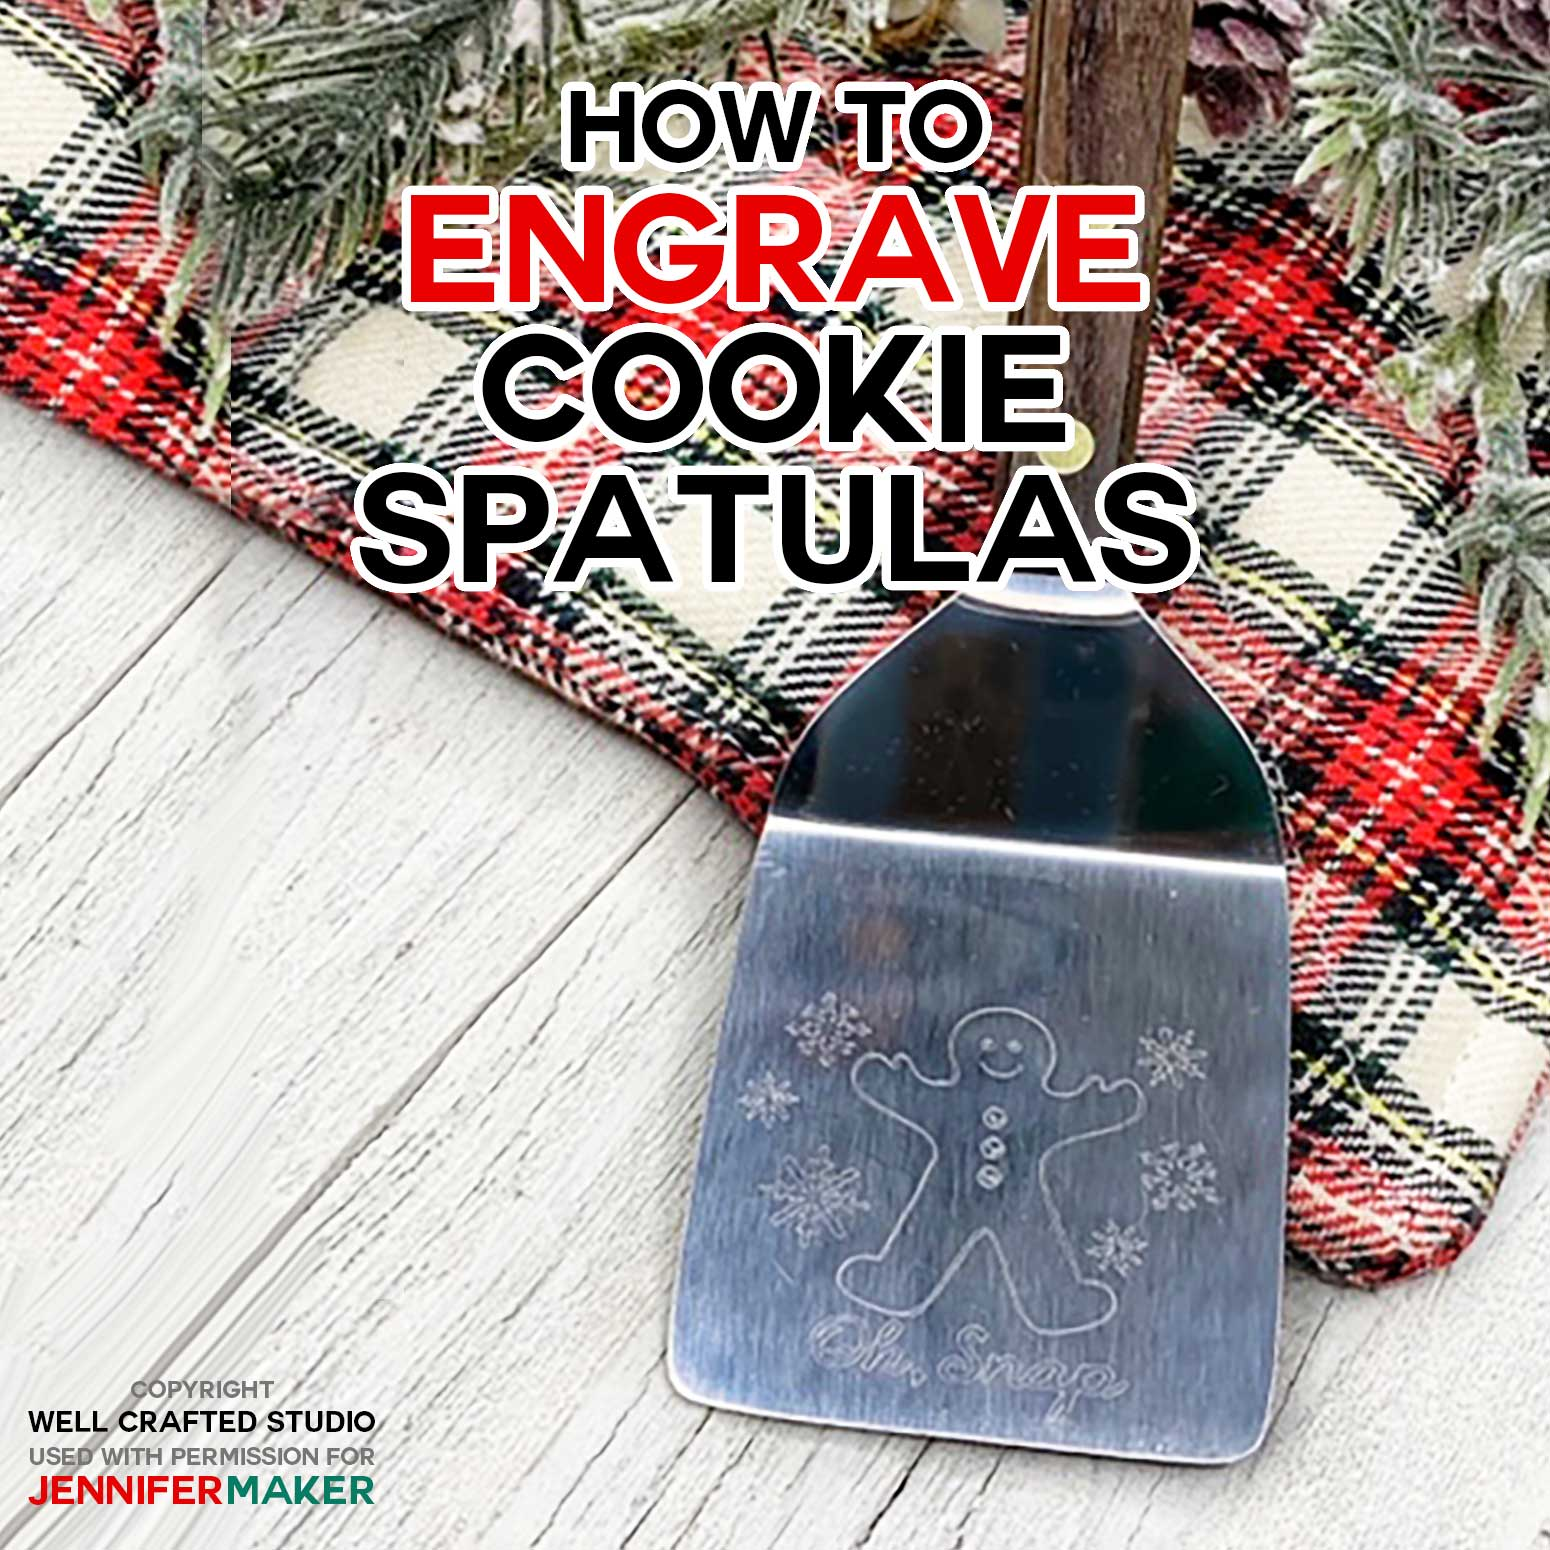 How to Engrave Cookie Spatulas with the Cricut Maker Engraving Tool - Full Tutorial with Free Templates and SVG Cut Files #cricutmaker #engraving #gifts